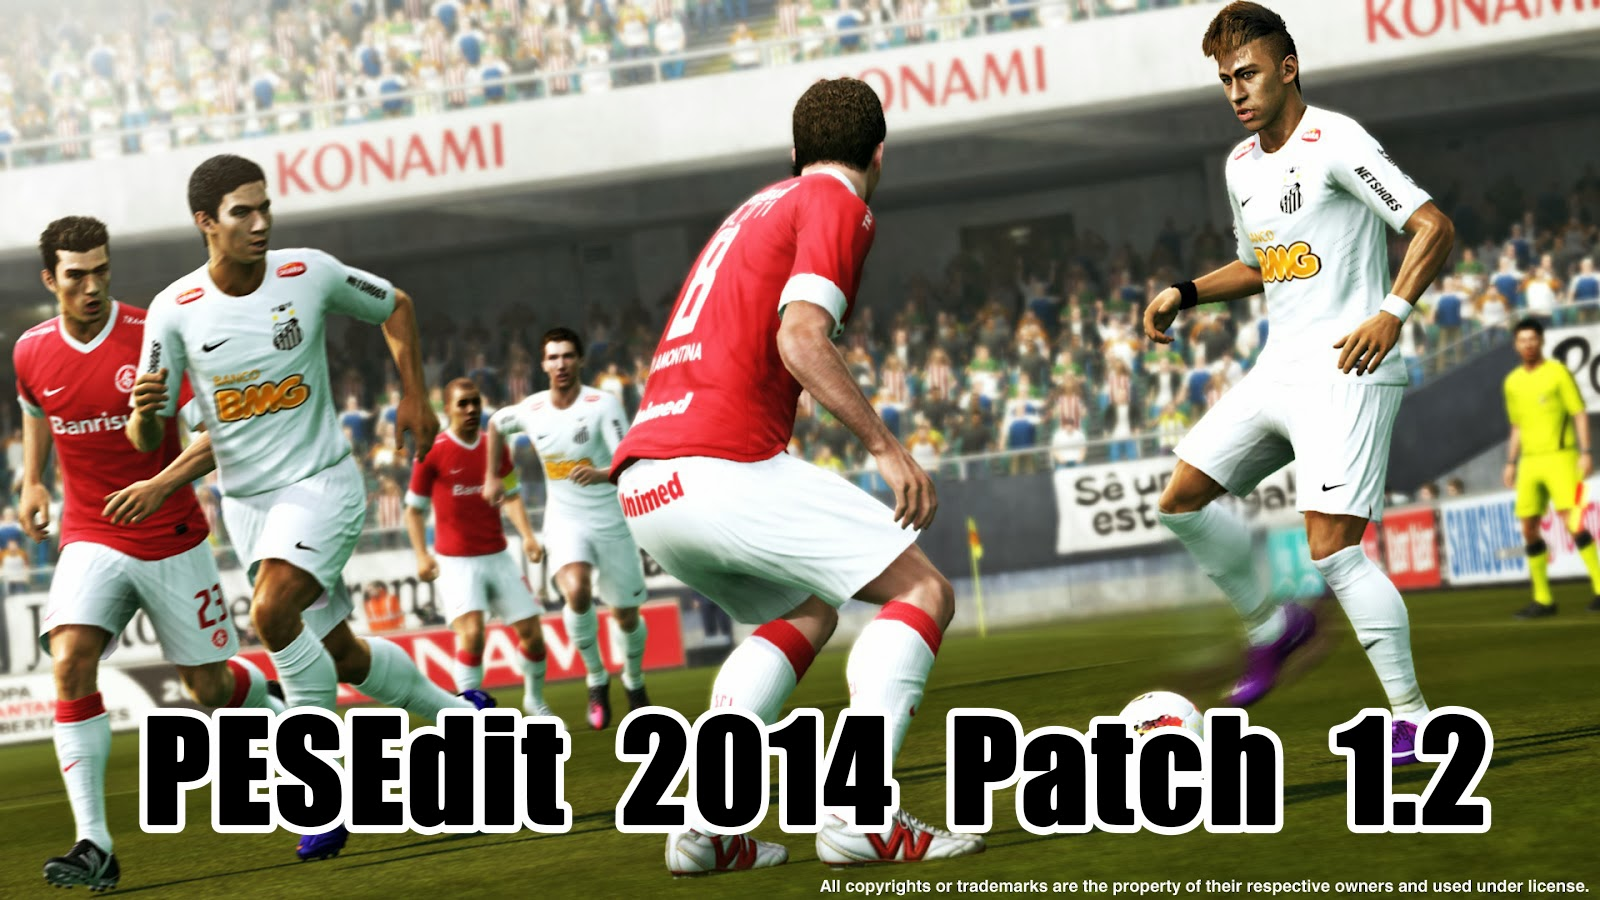 pes 2014 patch 12 torrent - proforthape